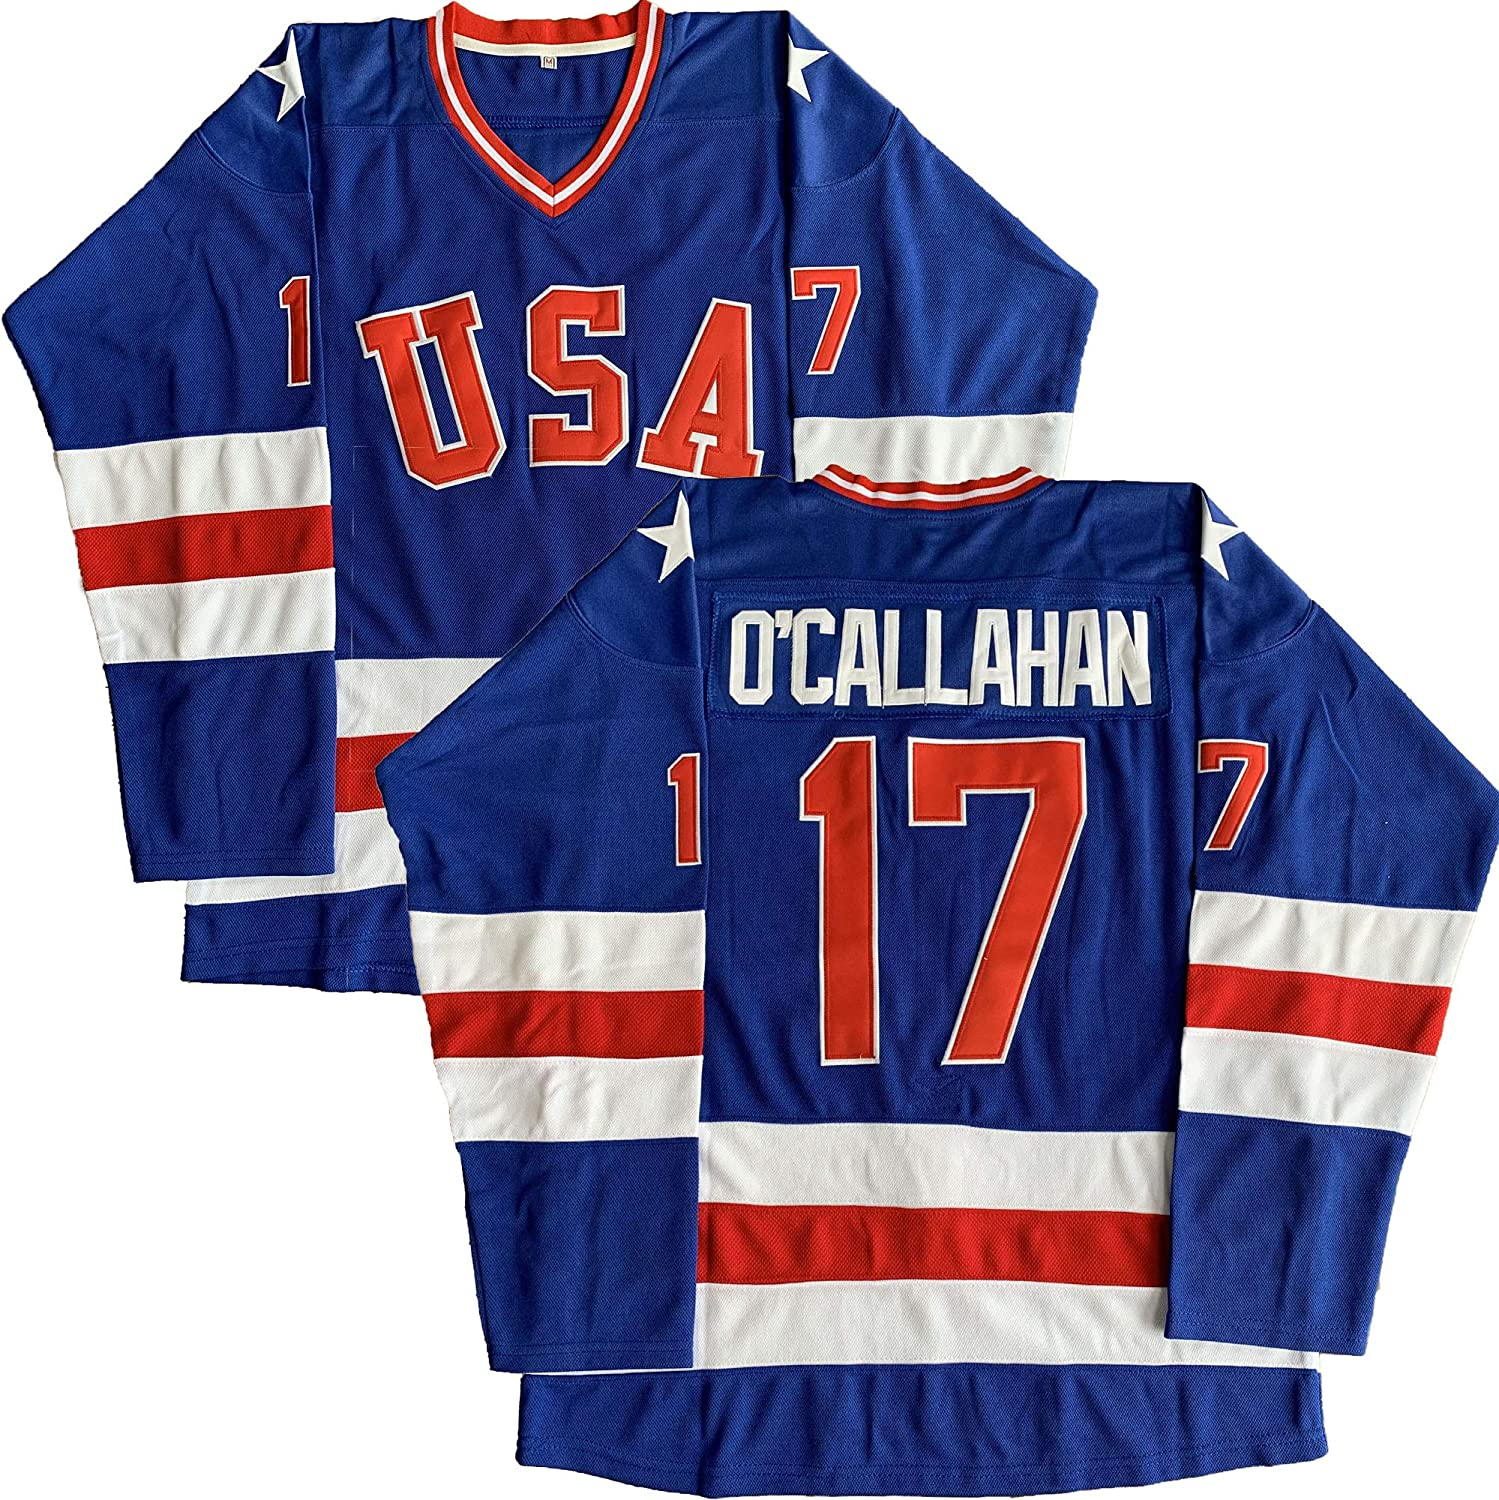 #21 Mike Eruzione 1980 Miracle On Ice USA Hockey 17 Jack O'Callahan 30 Jim Craig Stitched Hockey Jerseys 91ryaYmDIiL